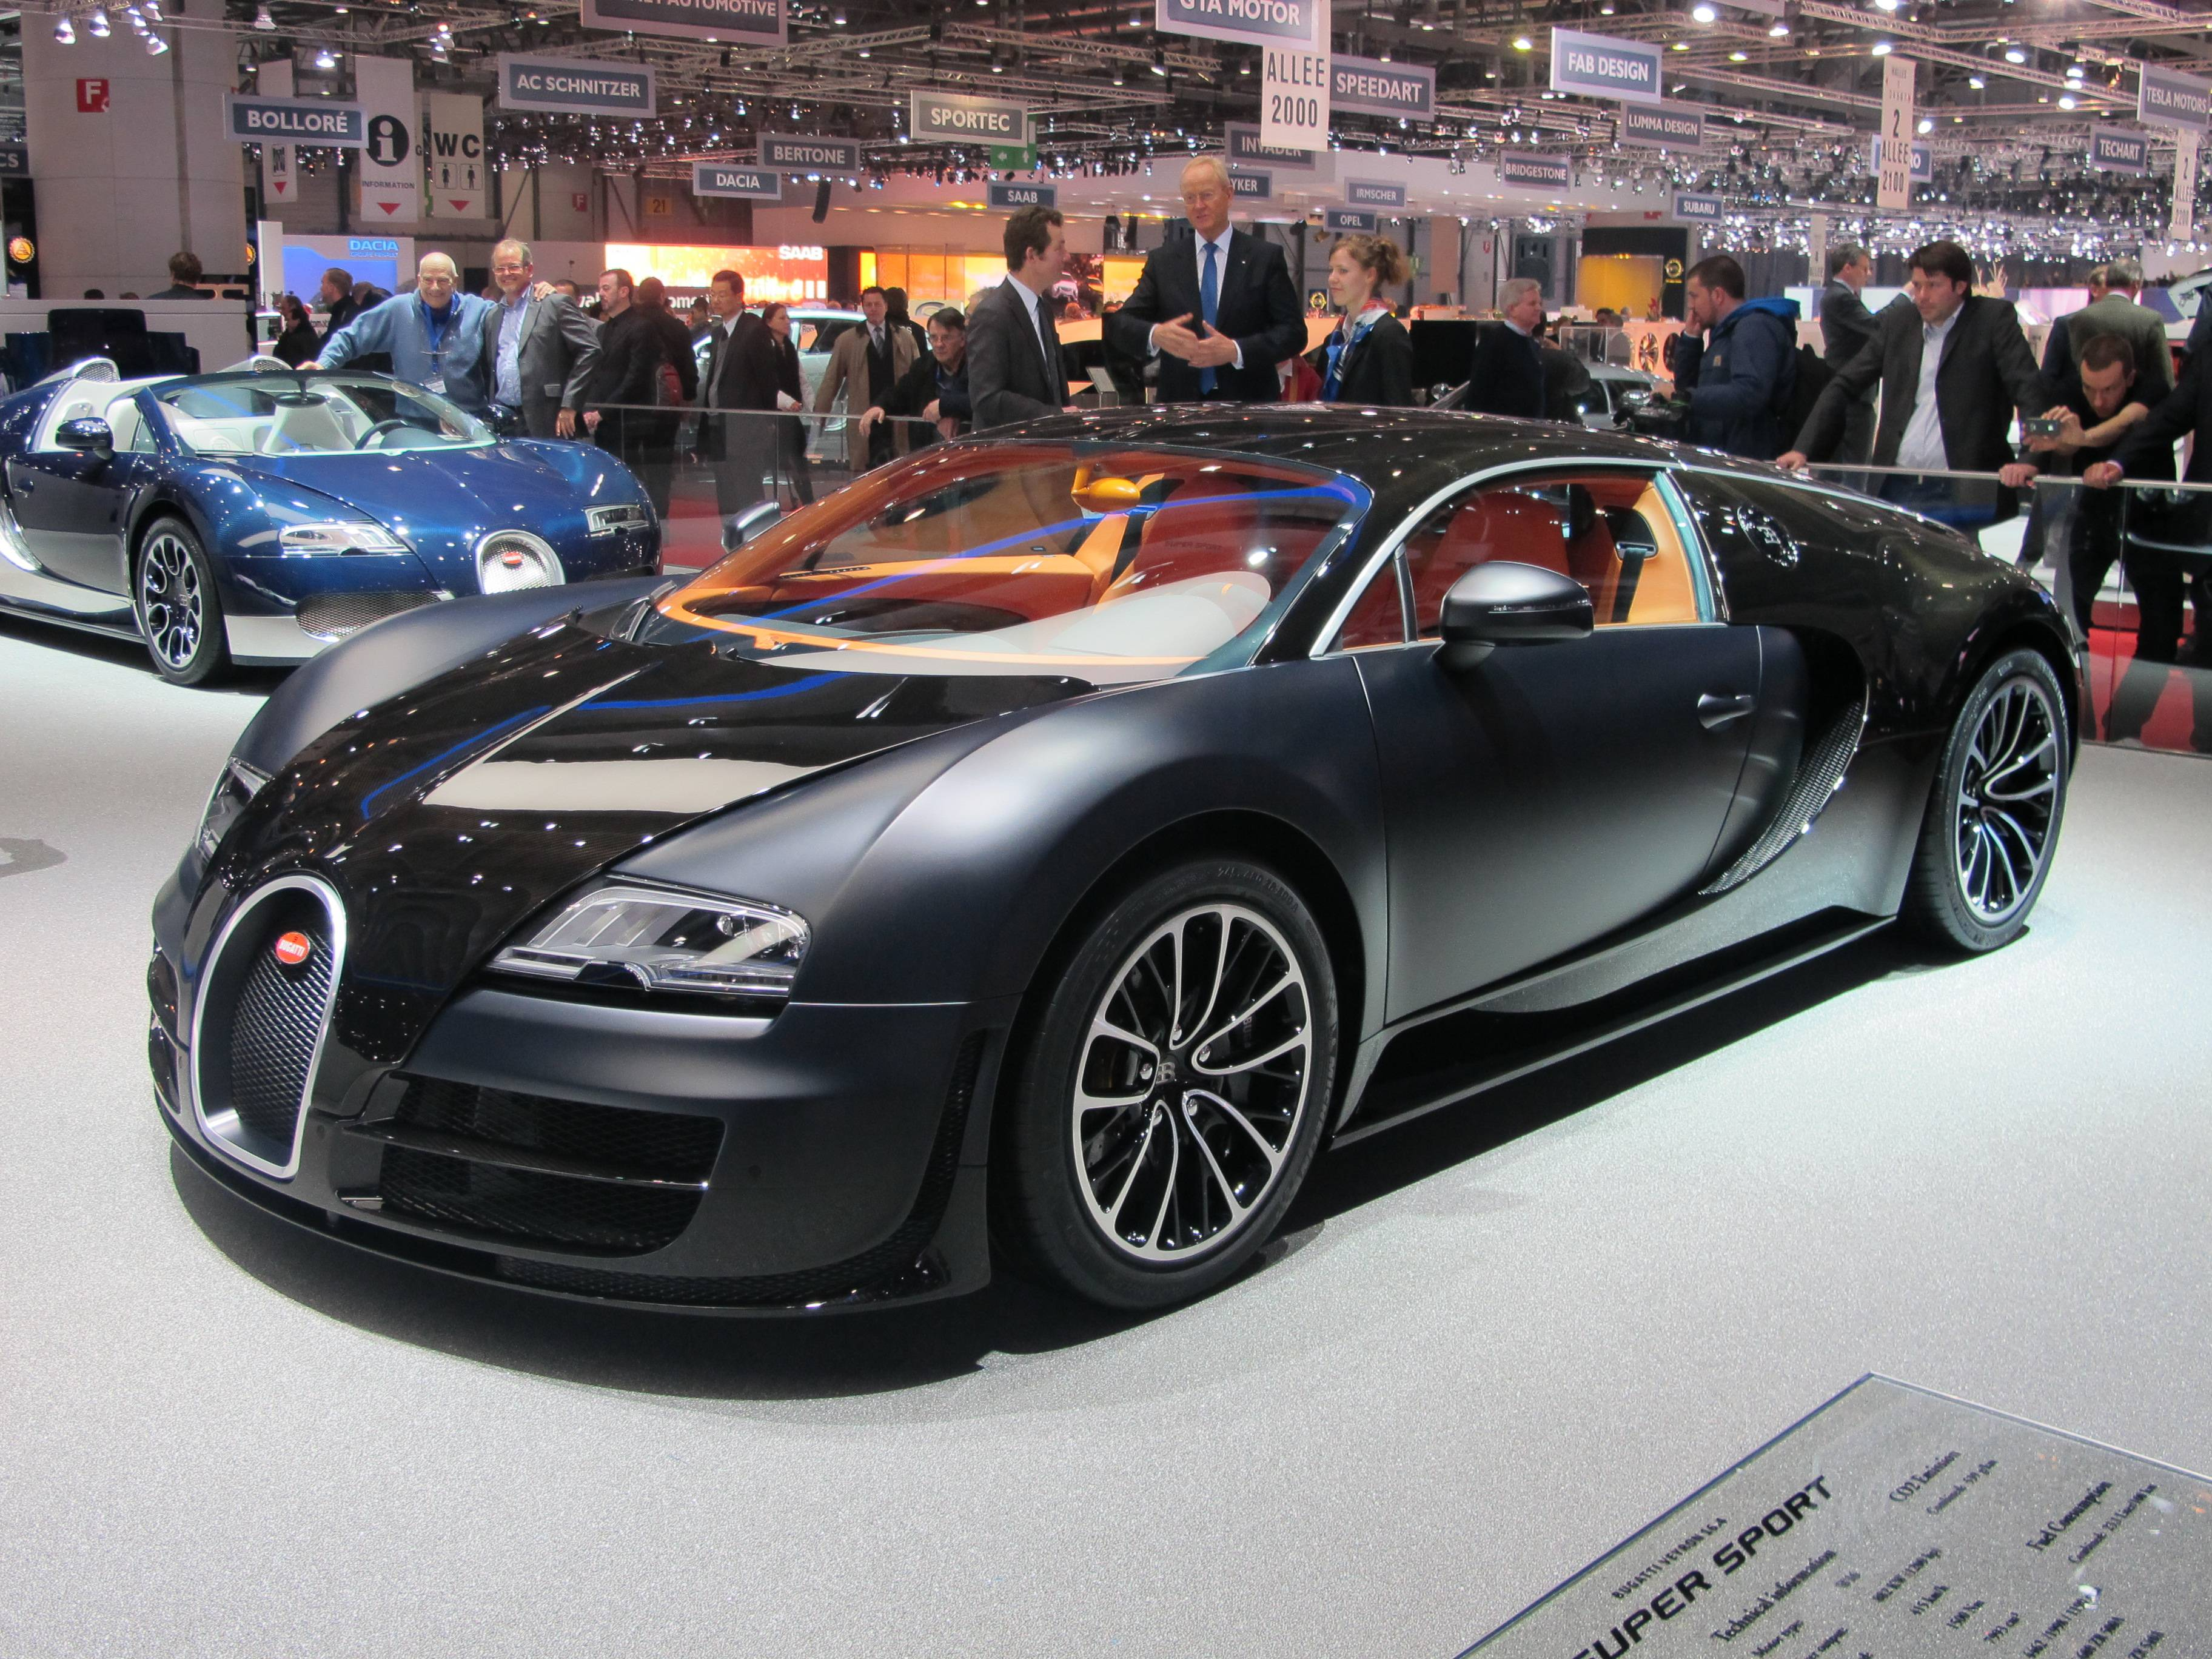 Geneva Motor Show - Bugatti's Speed Breaking Super Sport